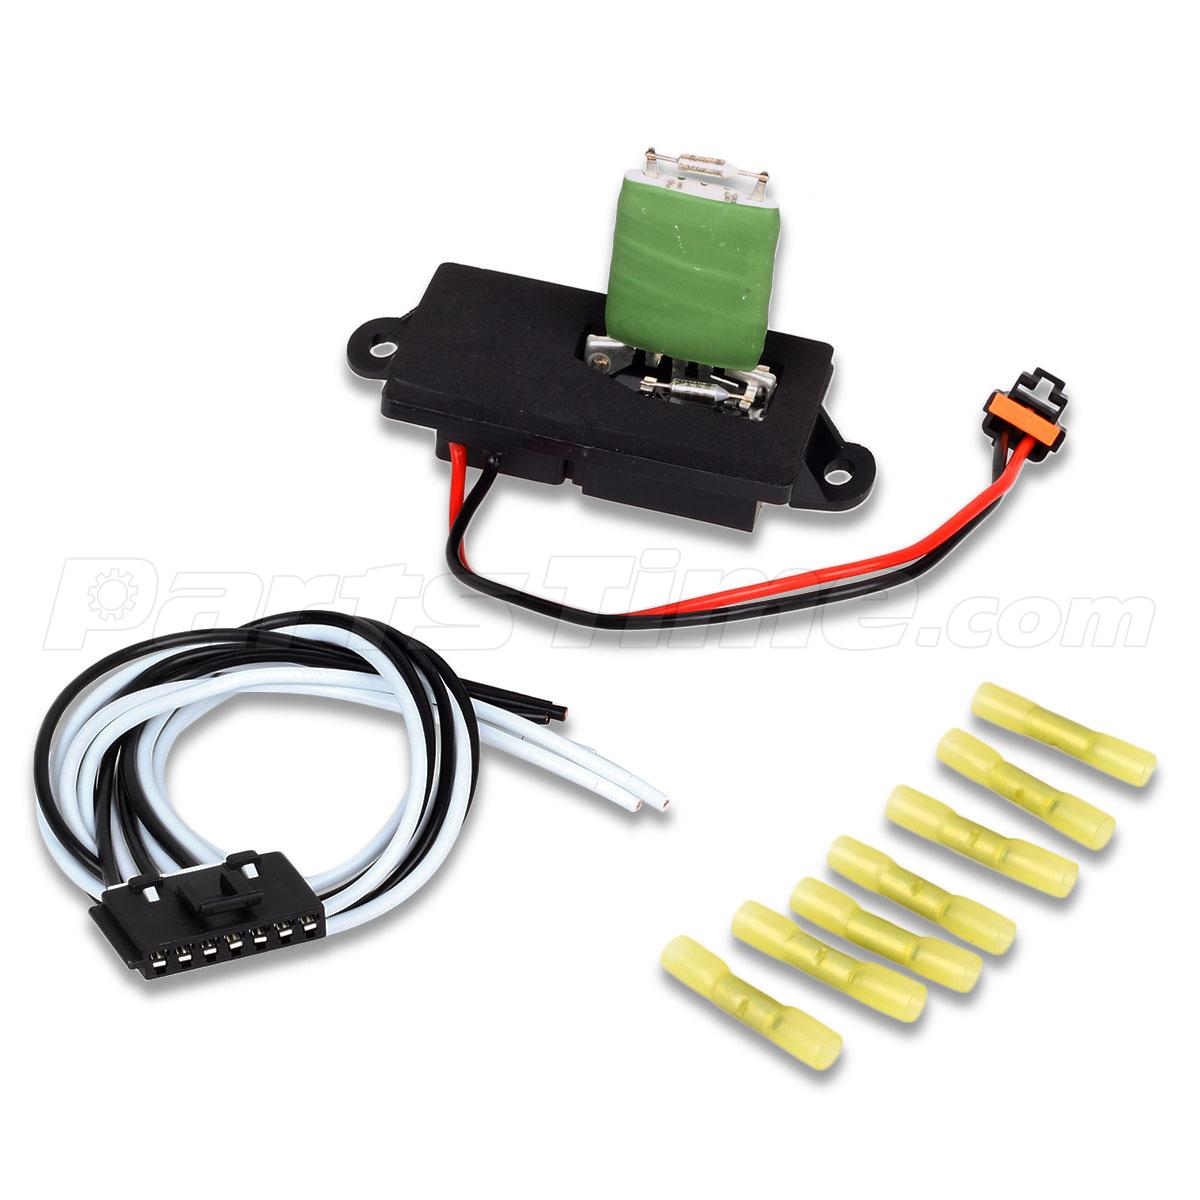 hvac blower motor resistor w wire harness for 00 06 gmc yukon xl Yukon Wire Harness Yukon Wire Harness #100 93 yukon wire harness diagram